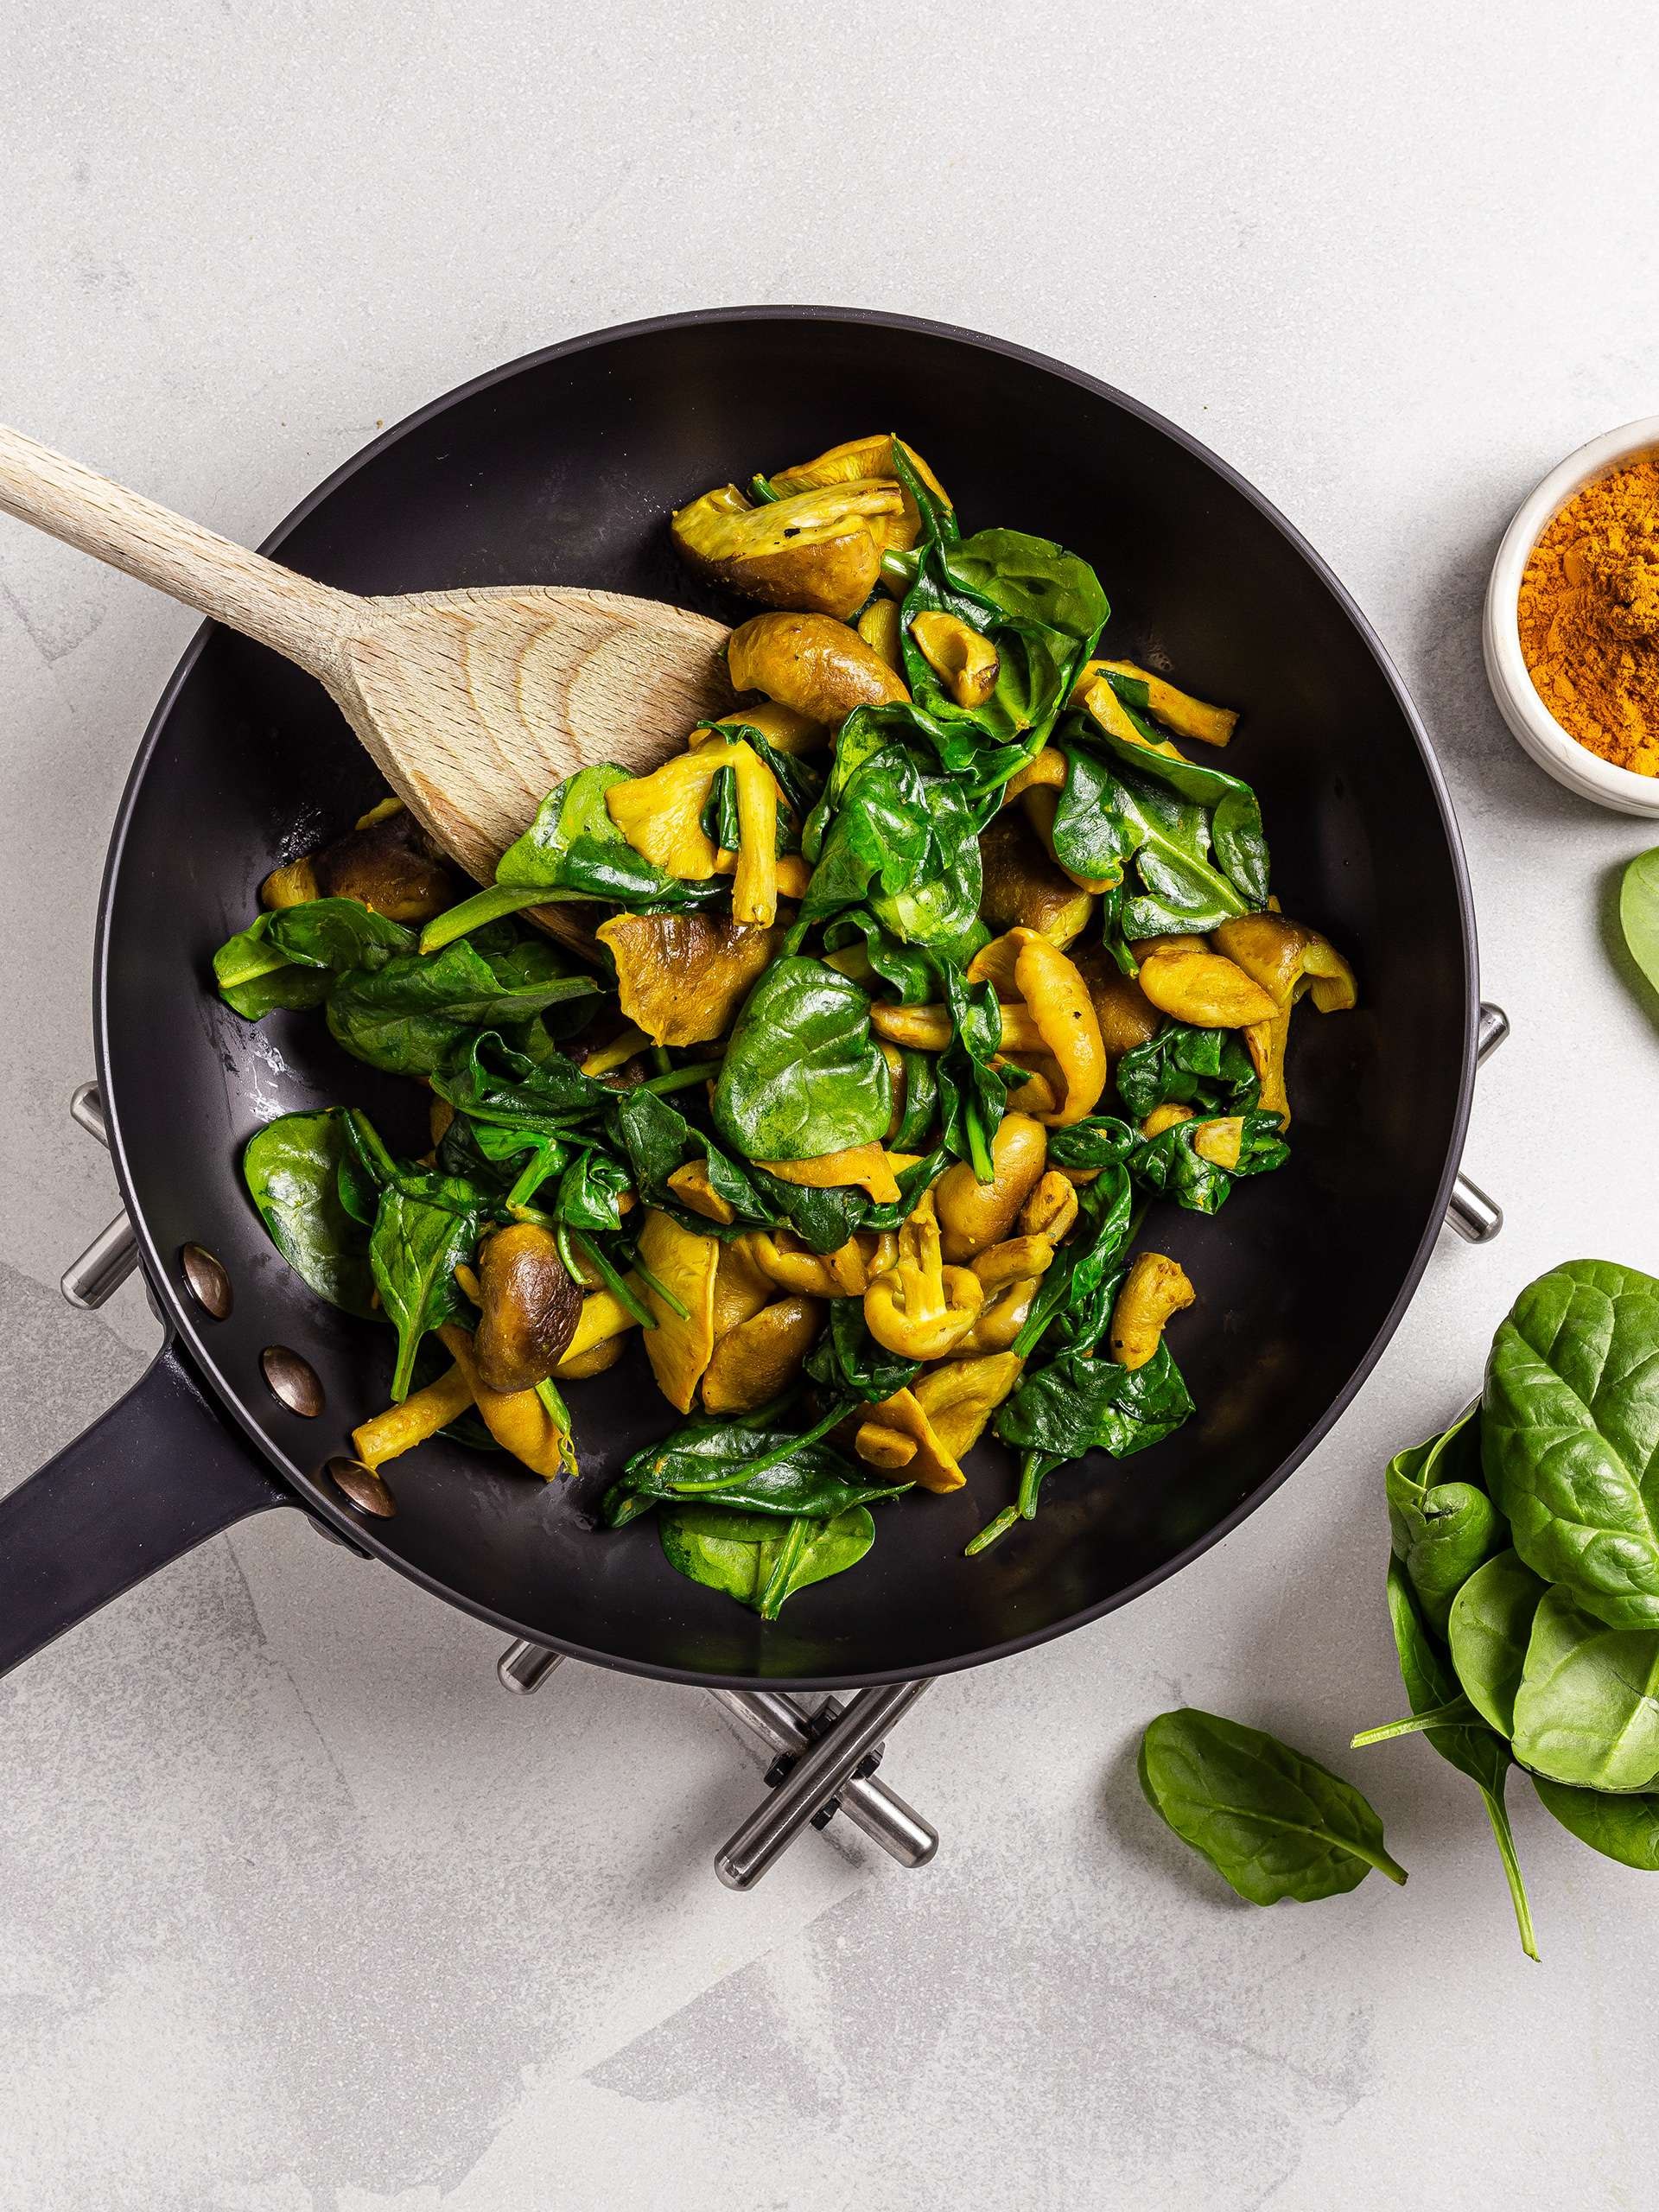 Cooked spinach and mushrooms with turmeric